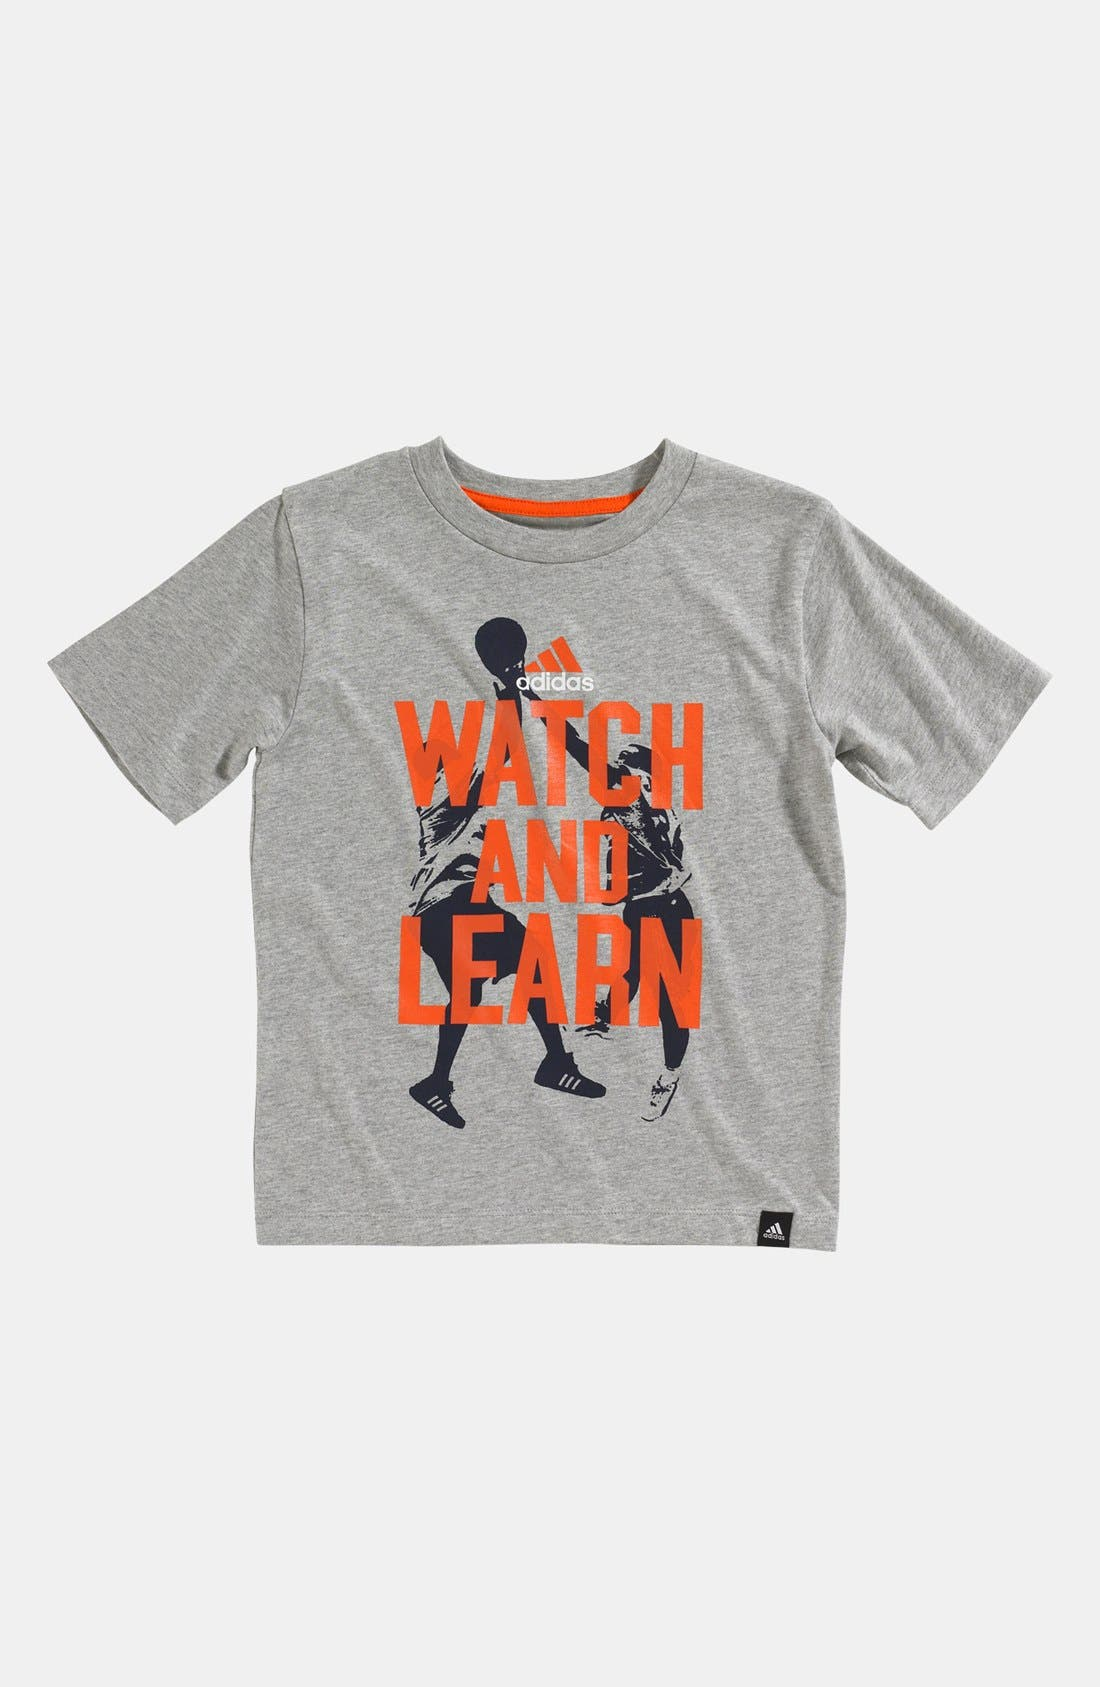 Alternate Image 1 Selected - adidas 'Watch & Learn' T-Shirt (Little Boys)